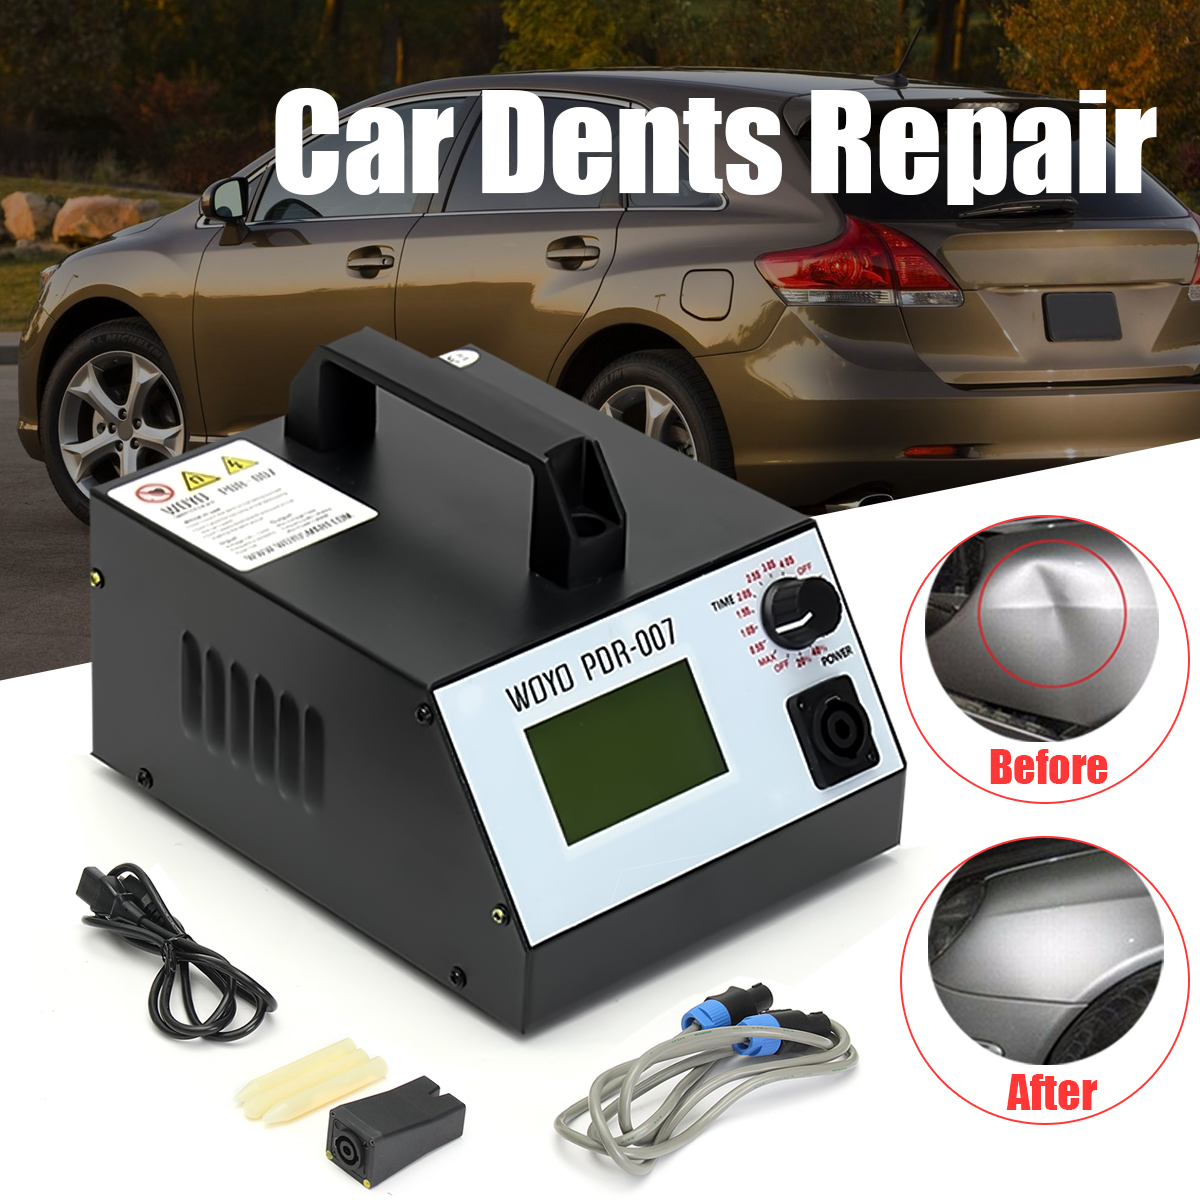 100-120V PDR007 Metal Repair Tools HotBox Removing Dents Sheet Induction Heater 500pcs stud welder draw pin set for removing dents car body sheet metal 2 0mm